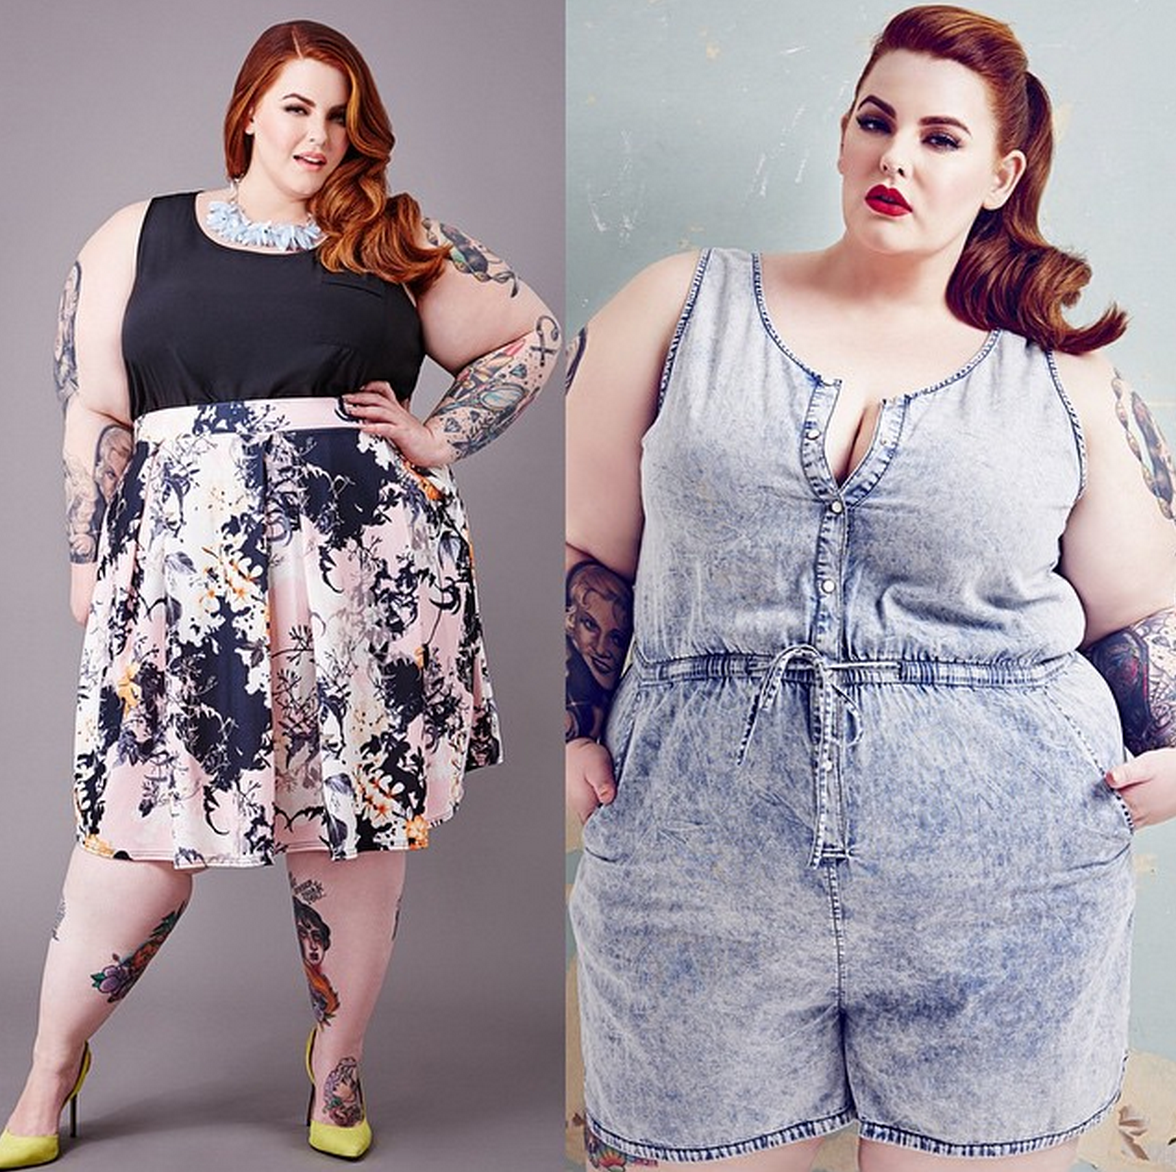 13 Stunning Tess Holliday Looks To Prove Plus Size Is Sexy Page 7